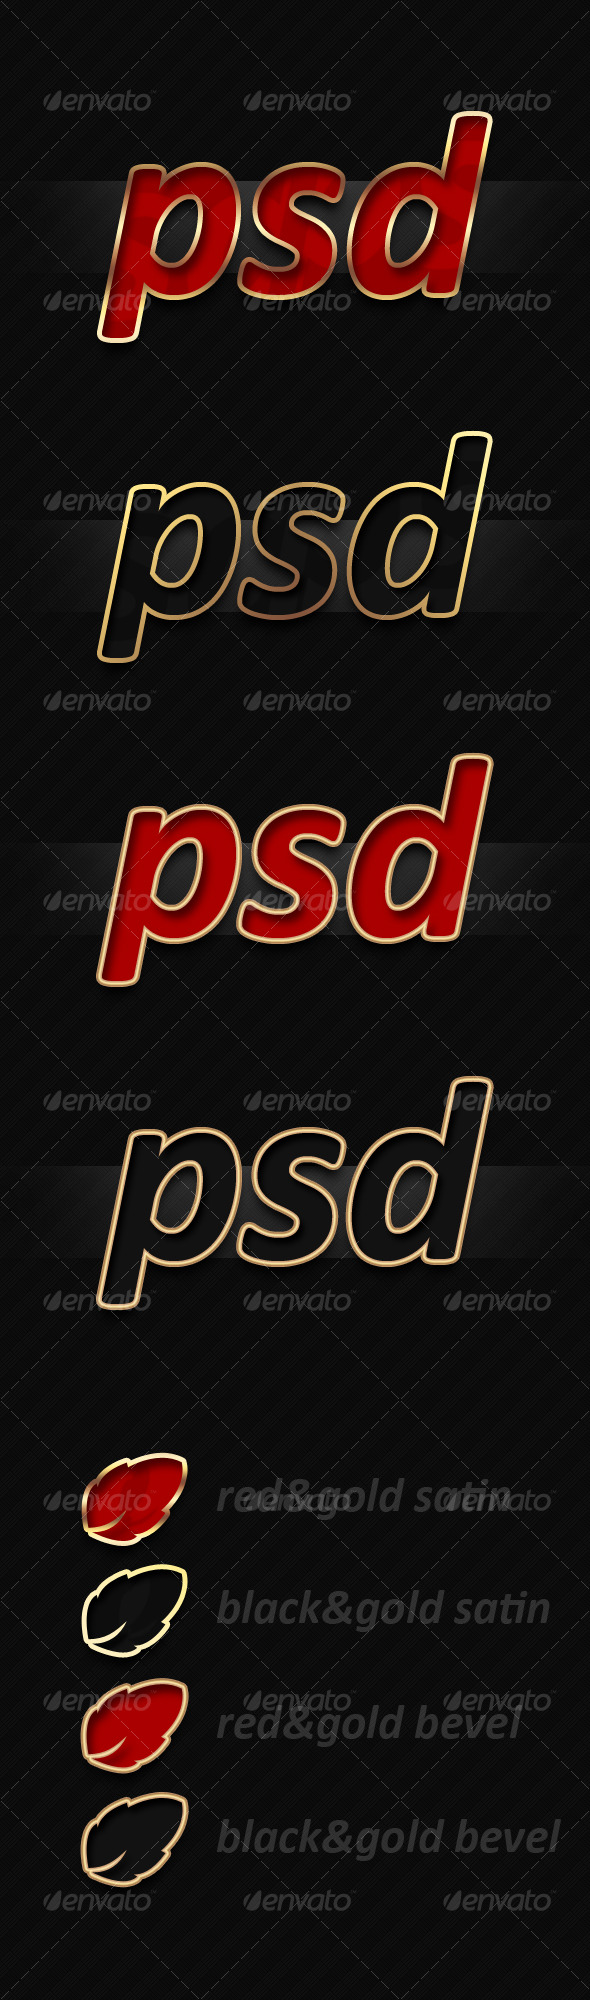 GraphicRiver Red&Gold Layer Styles 125632